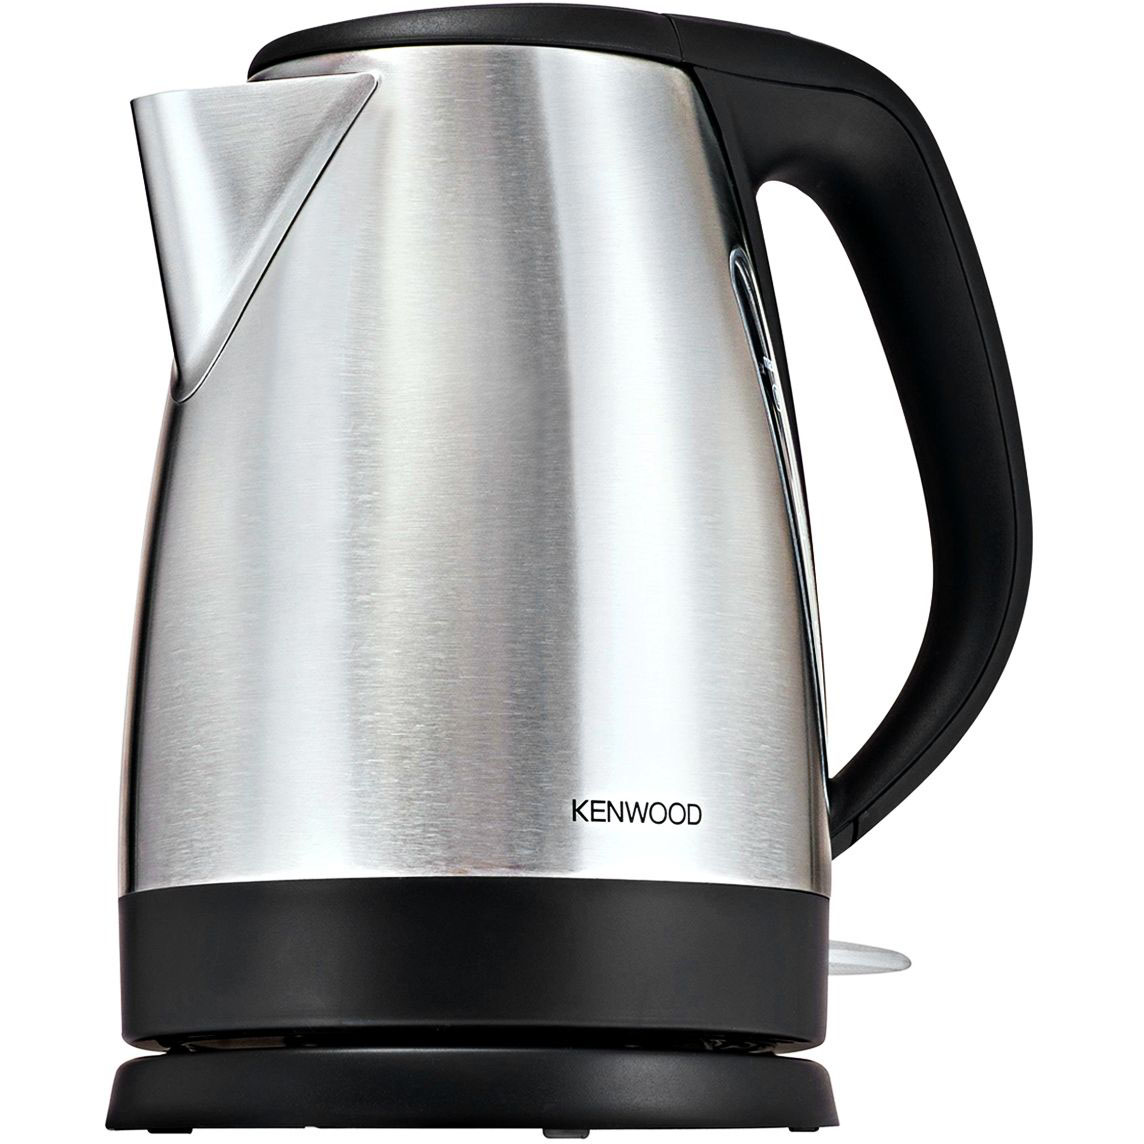 Kenwood SJM280 Kettle - Silver